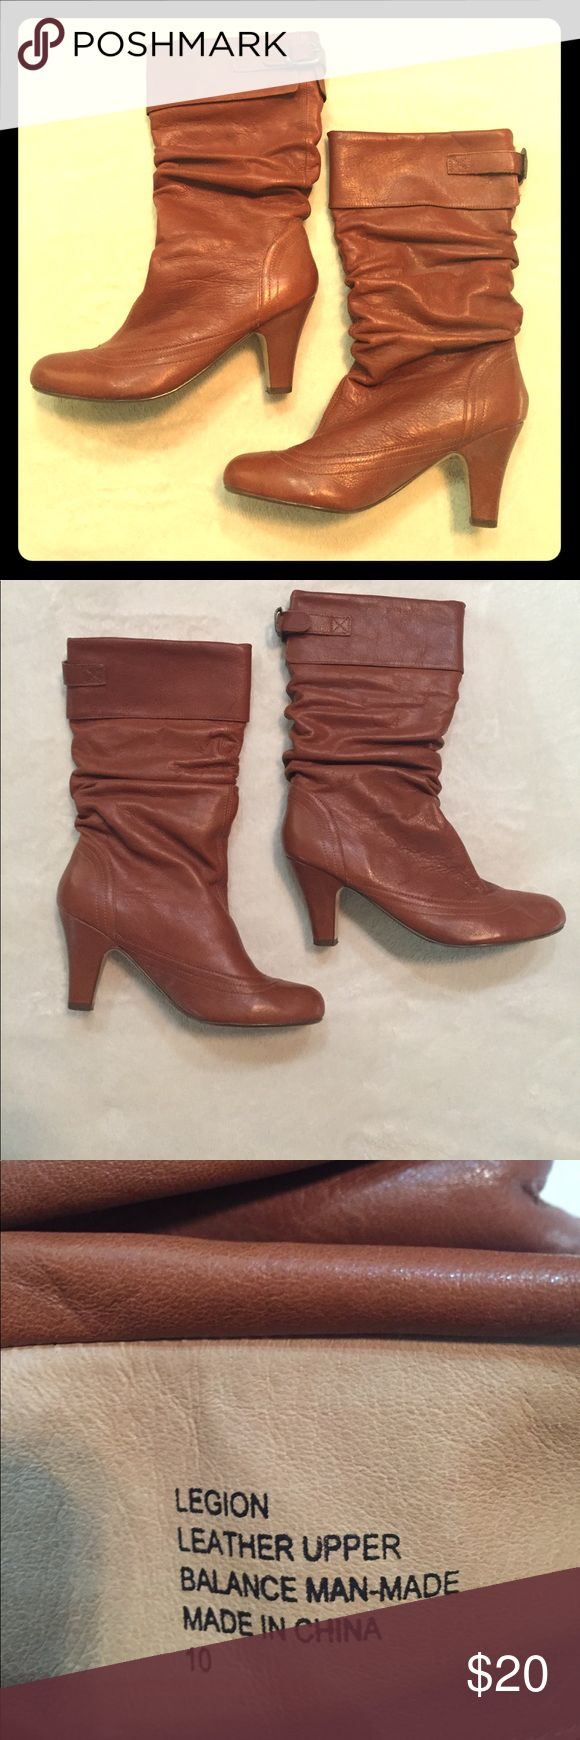 Steve Madden Legion Leather Upper Boots Comfy & cute! These adorable camel colored boots are a great addition to any outfit! Steve Madden Shoes Heeled Boots